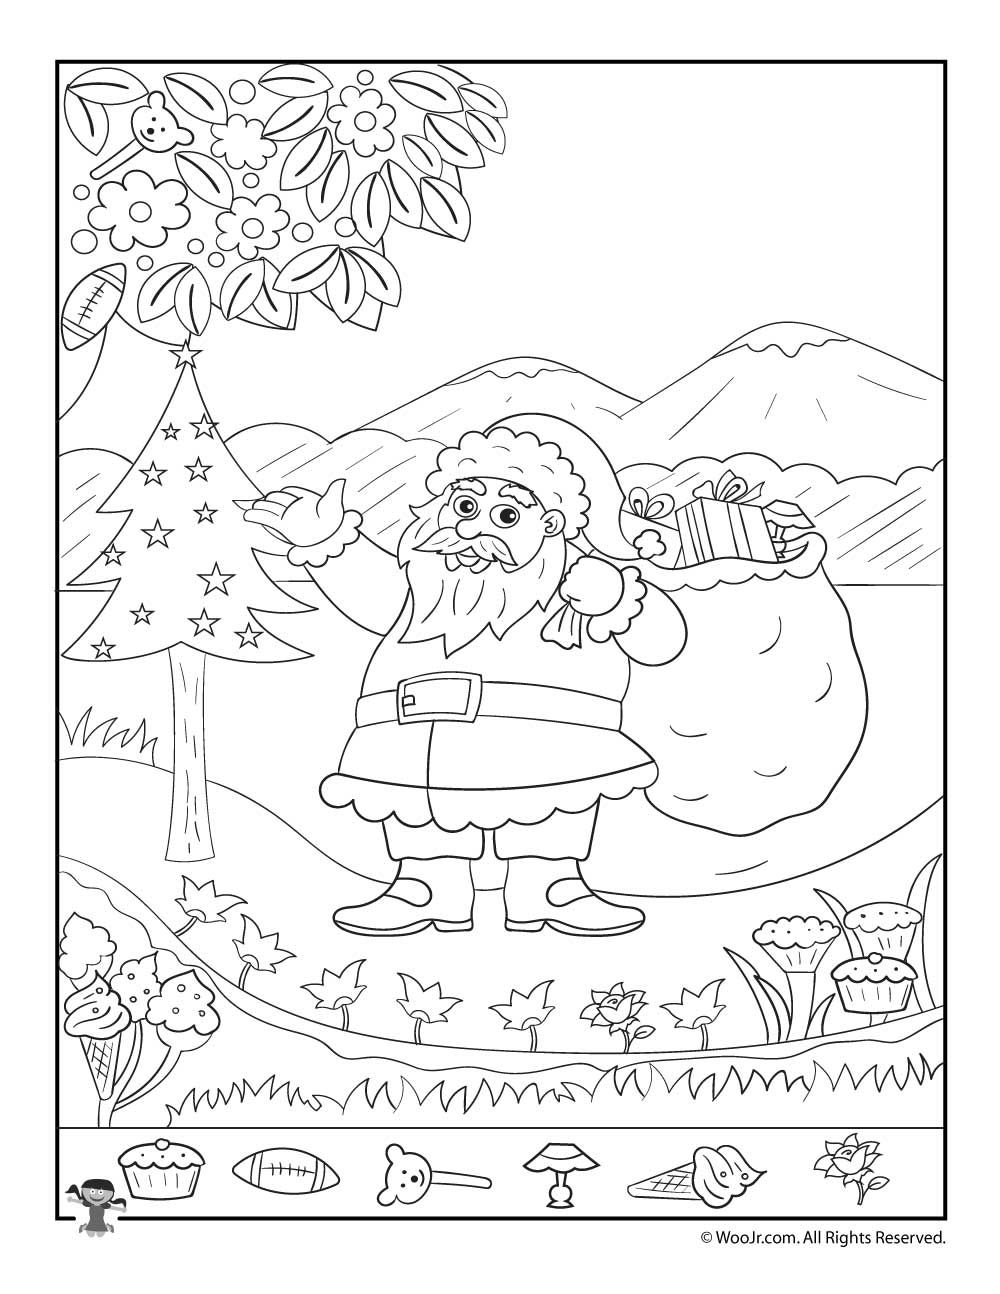 Santa Claus Christmas Hidden Picture Printable Page | Tareas ...